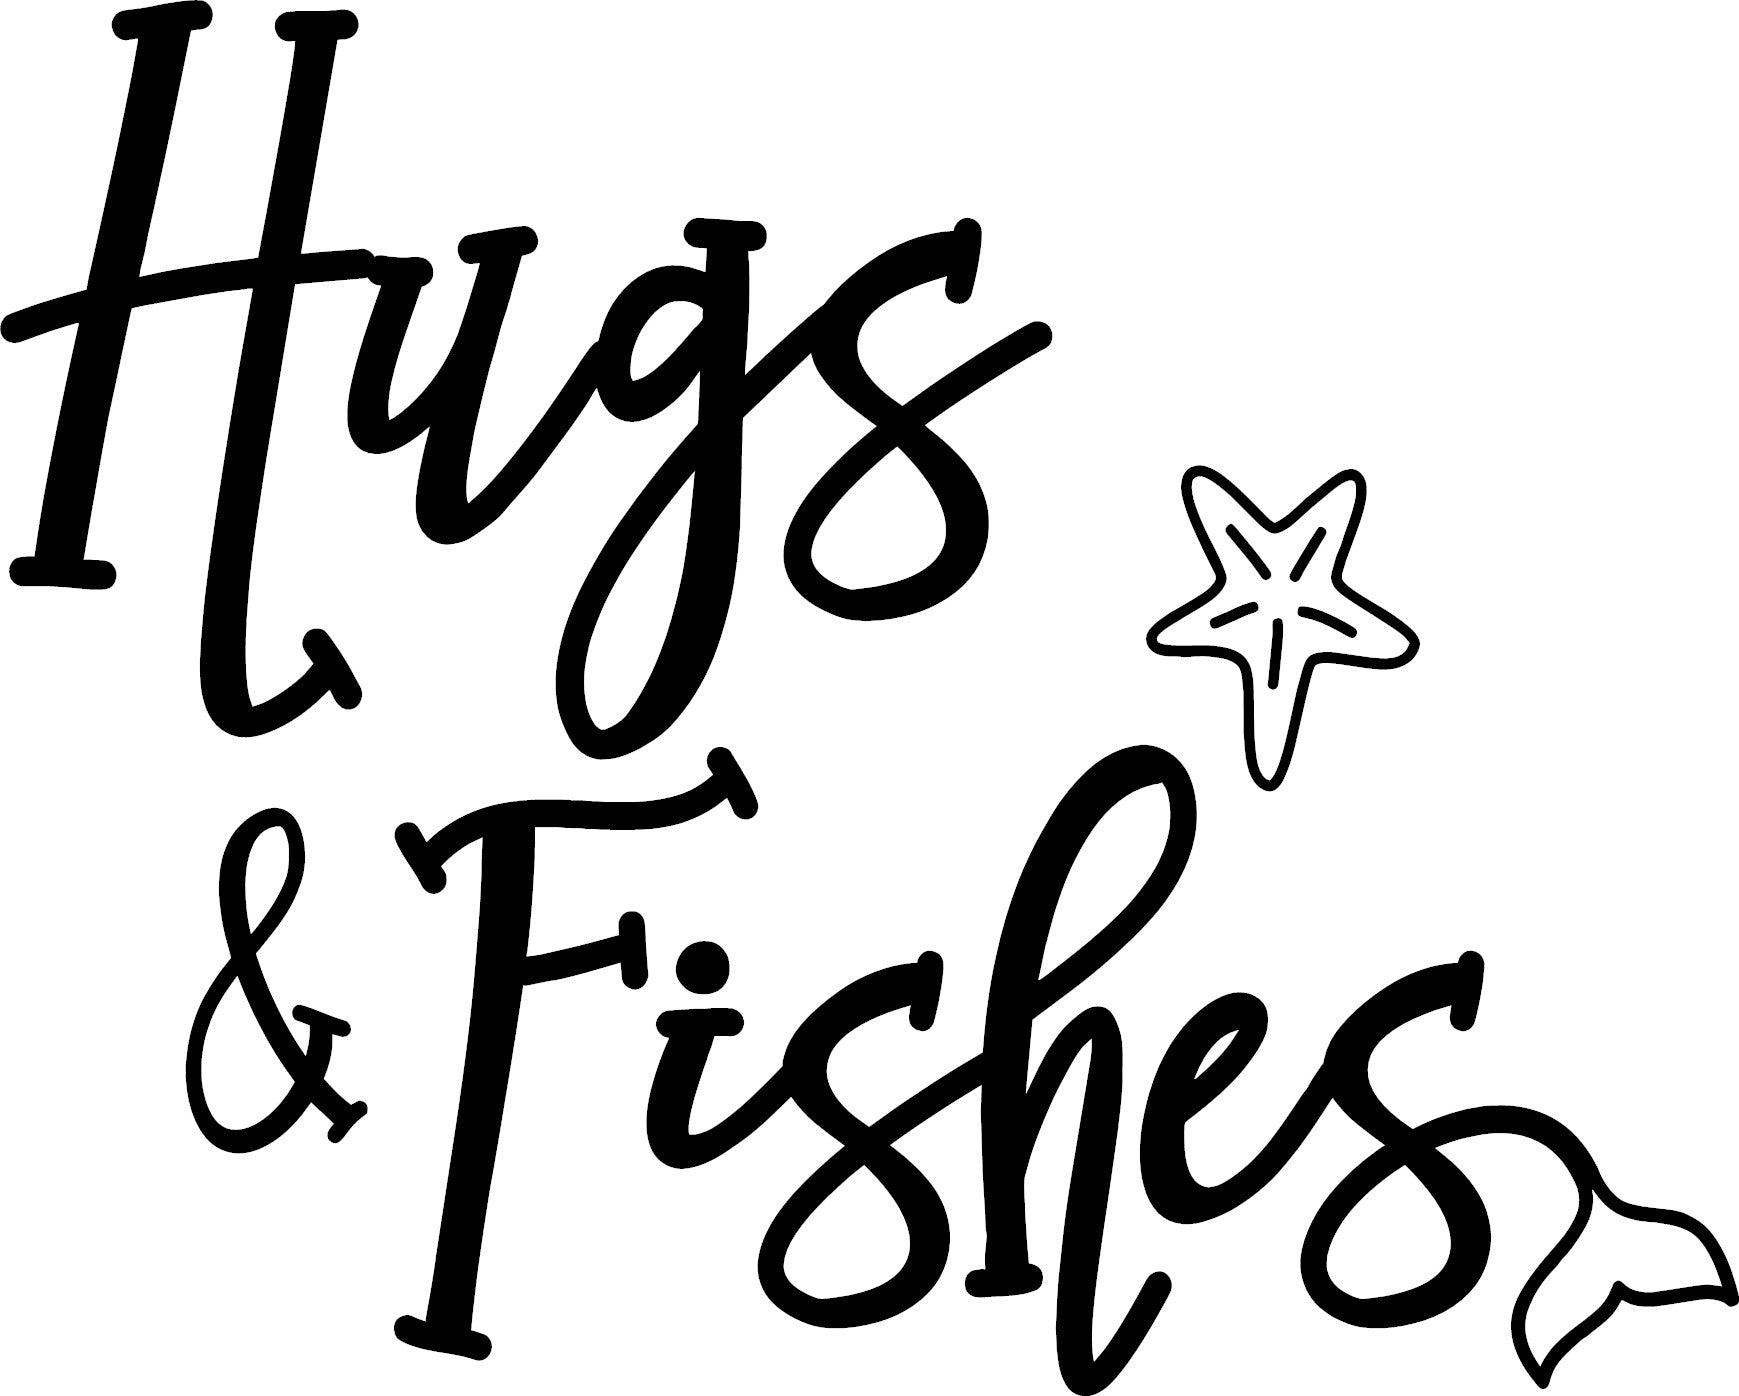 Hugs and Fishes Adult men